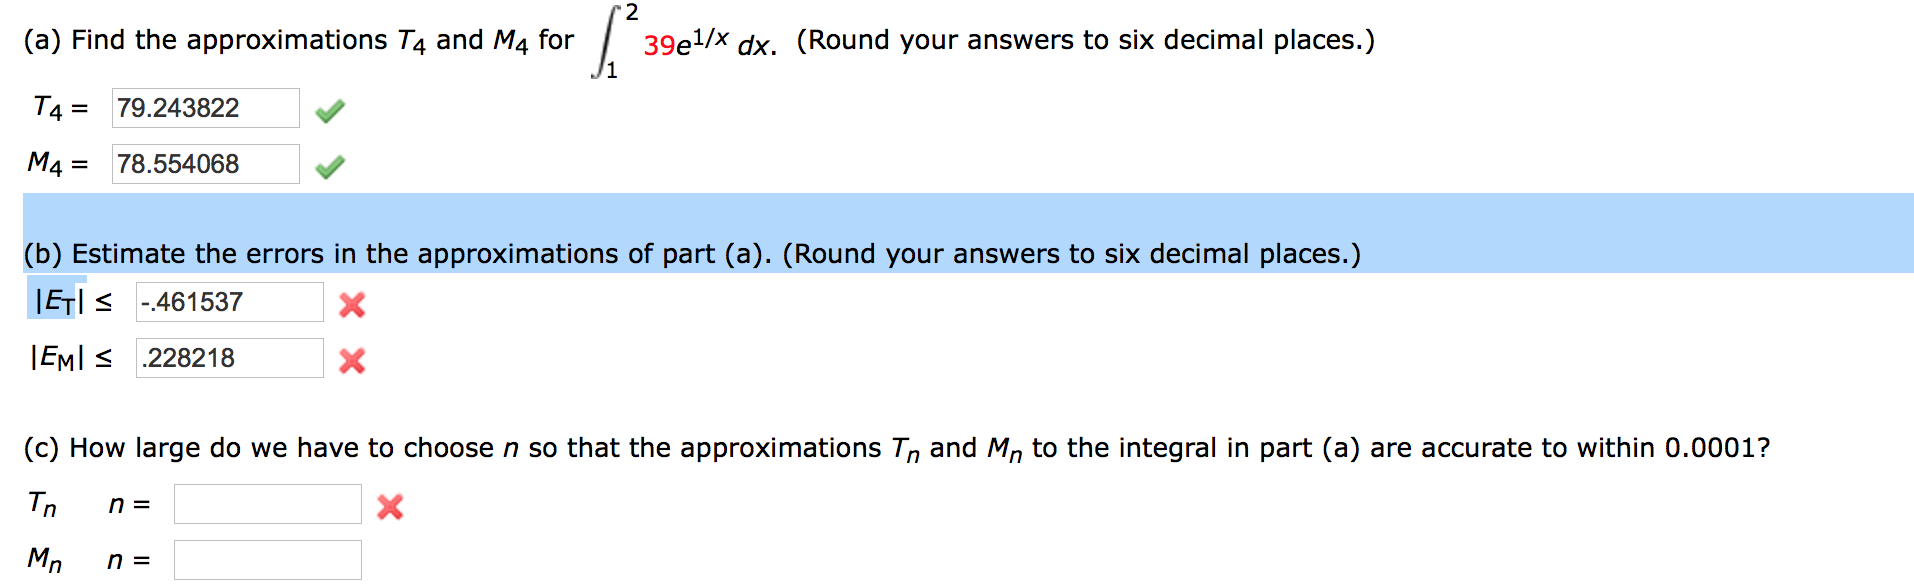 Image For (a) Find The Approximations T4 And M4 For Integral 1 To 2